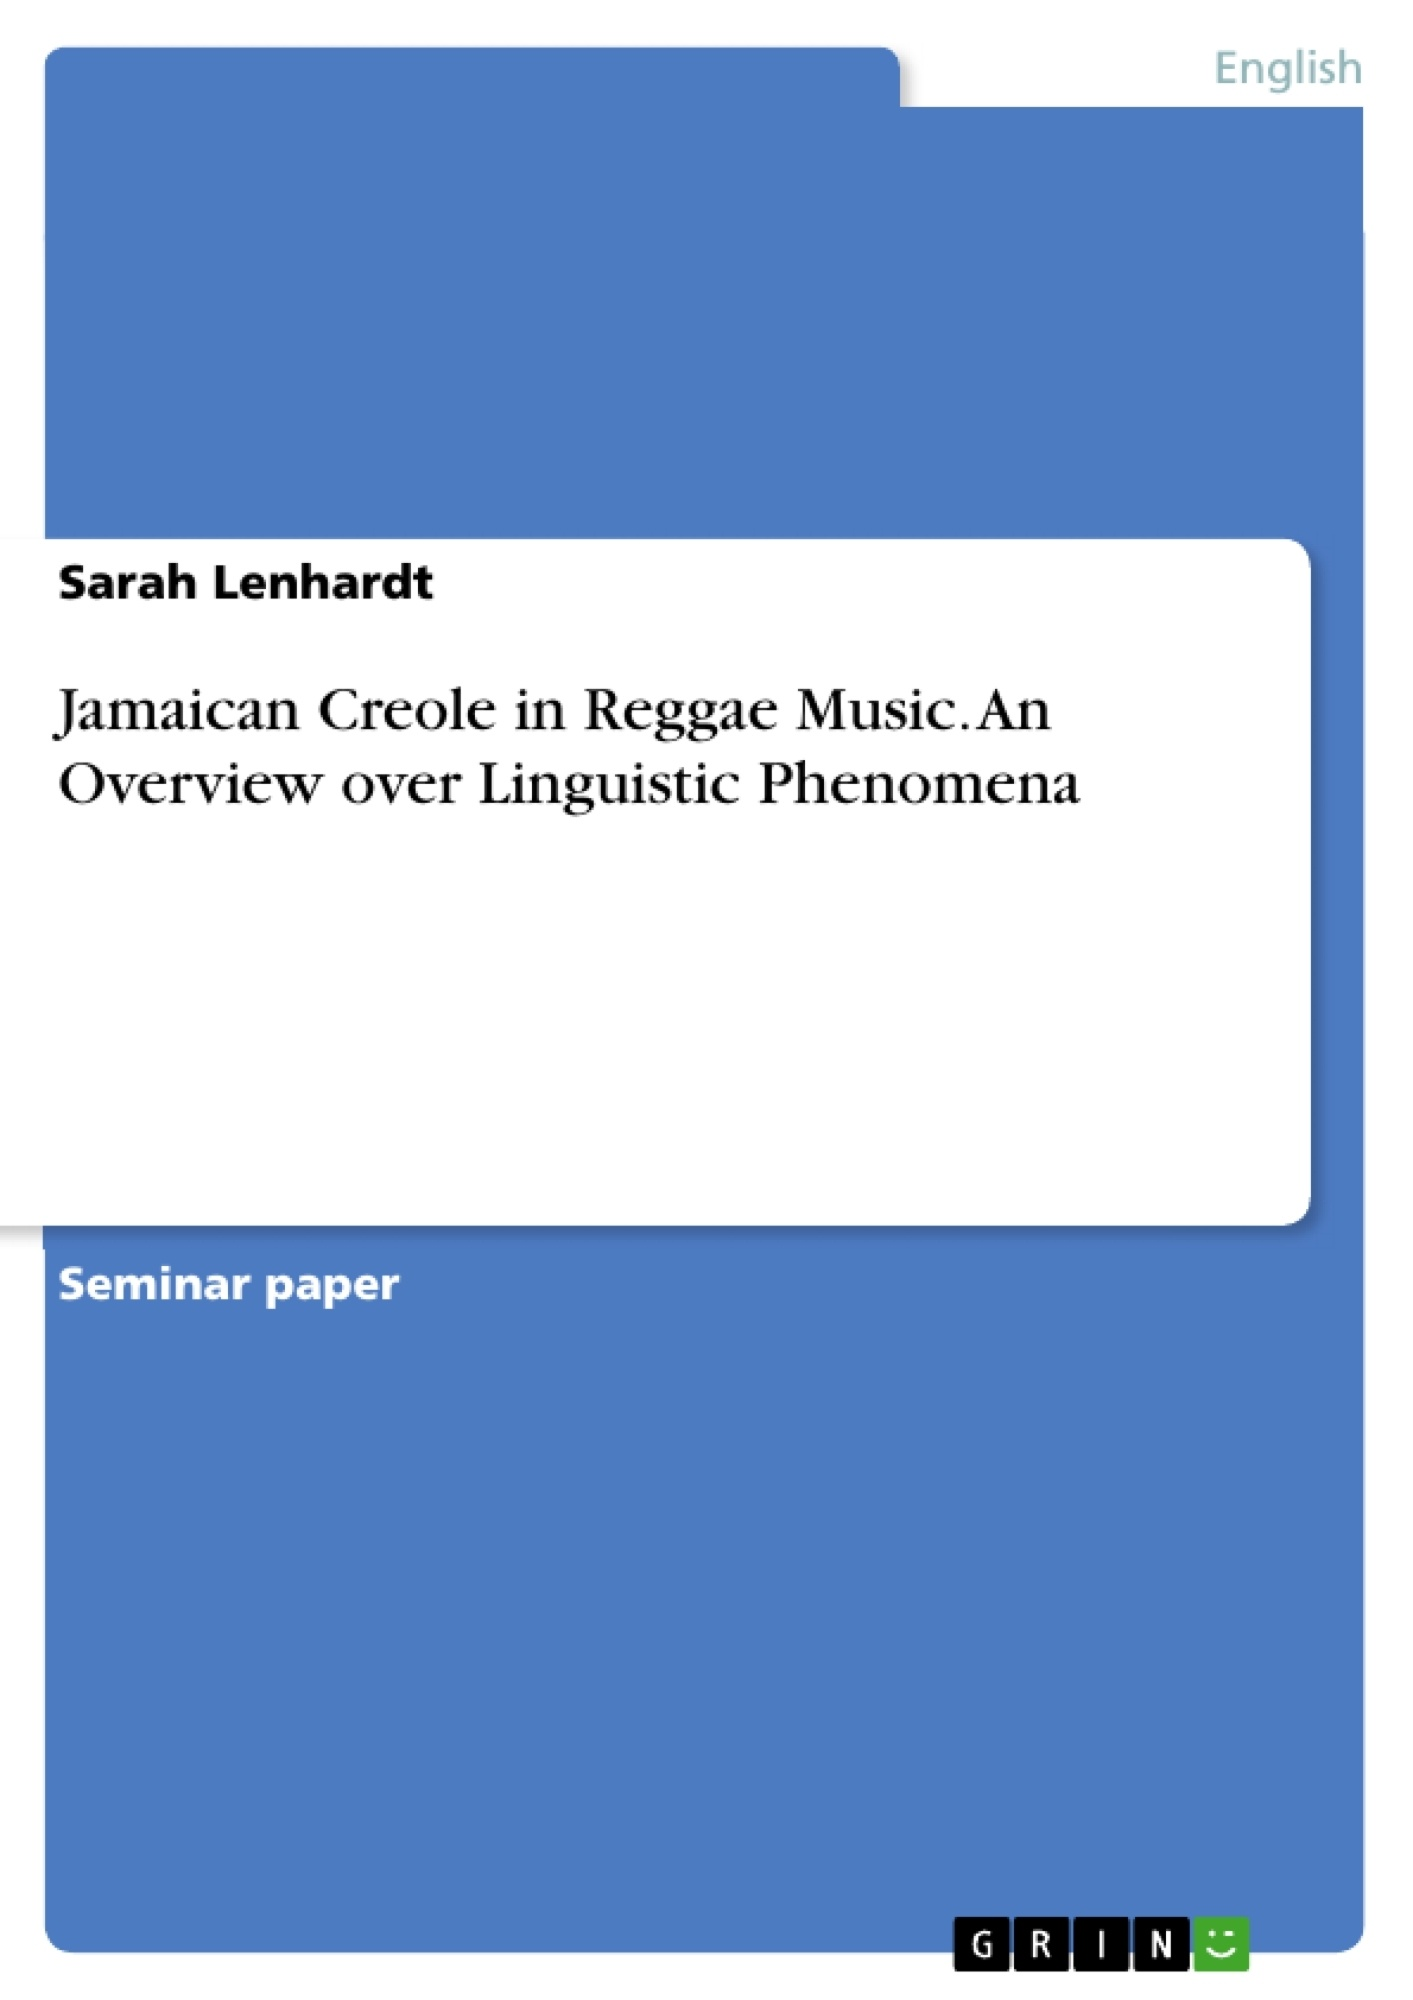 Title: Jamaican Creole in Reggae Music. An Overview over Linguistic Phenomena